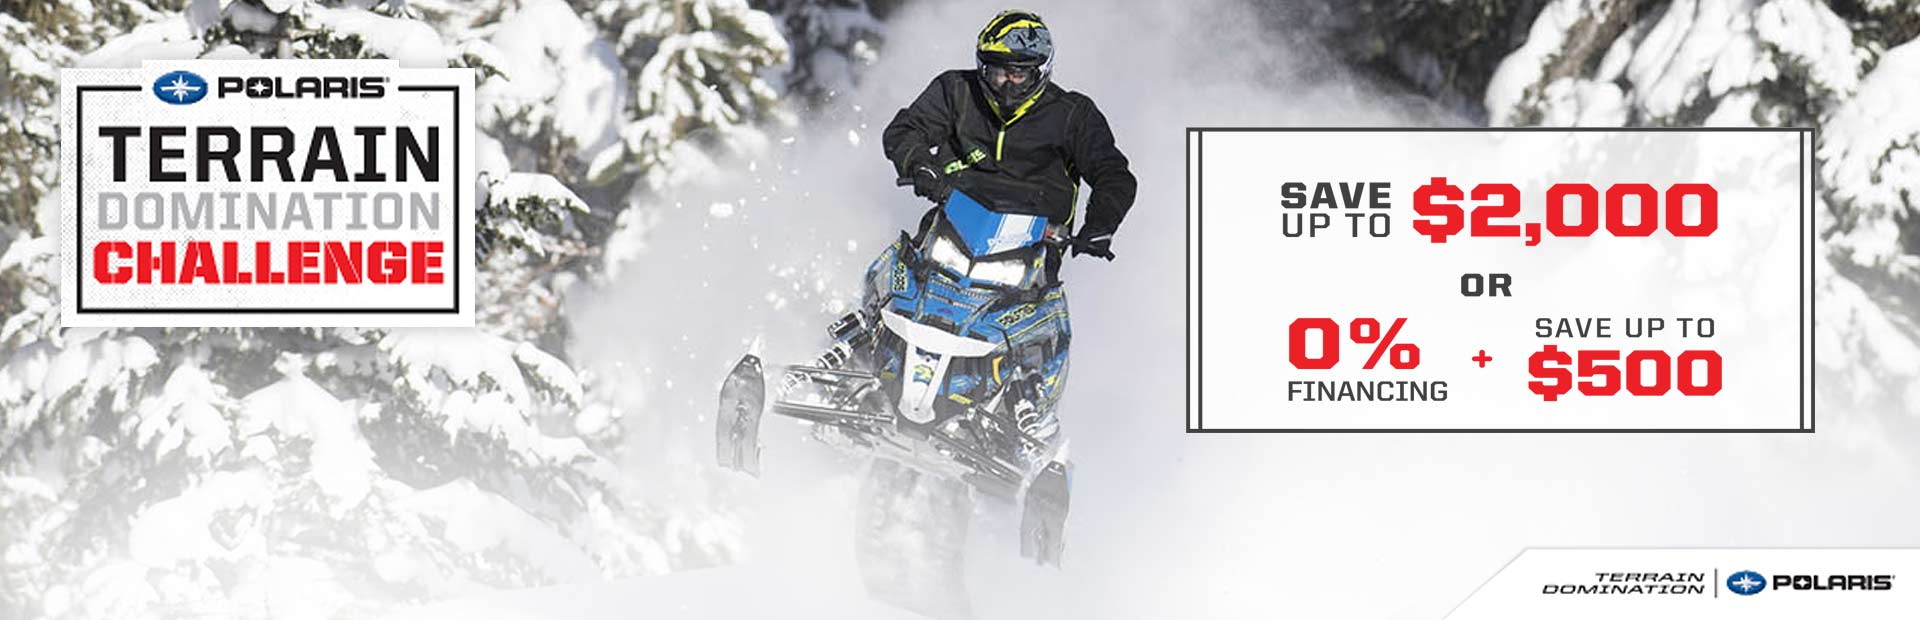 Polaris Industries: Great Deals on 2018 Sleds